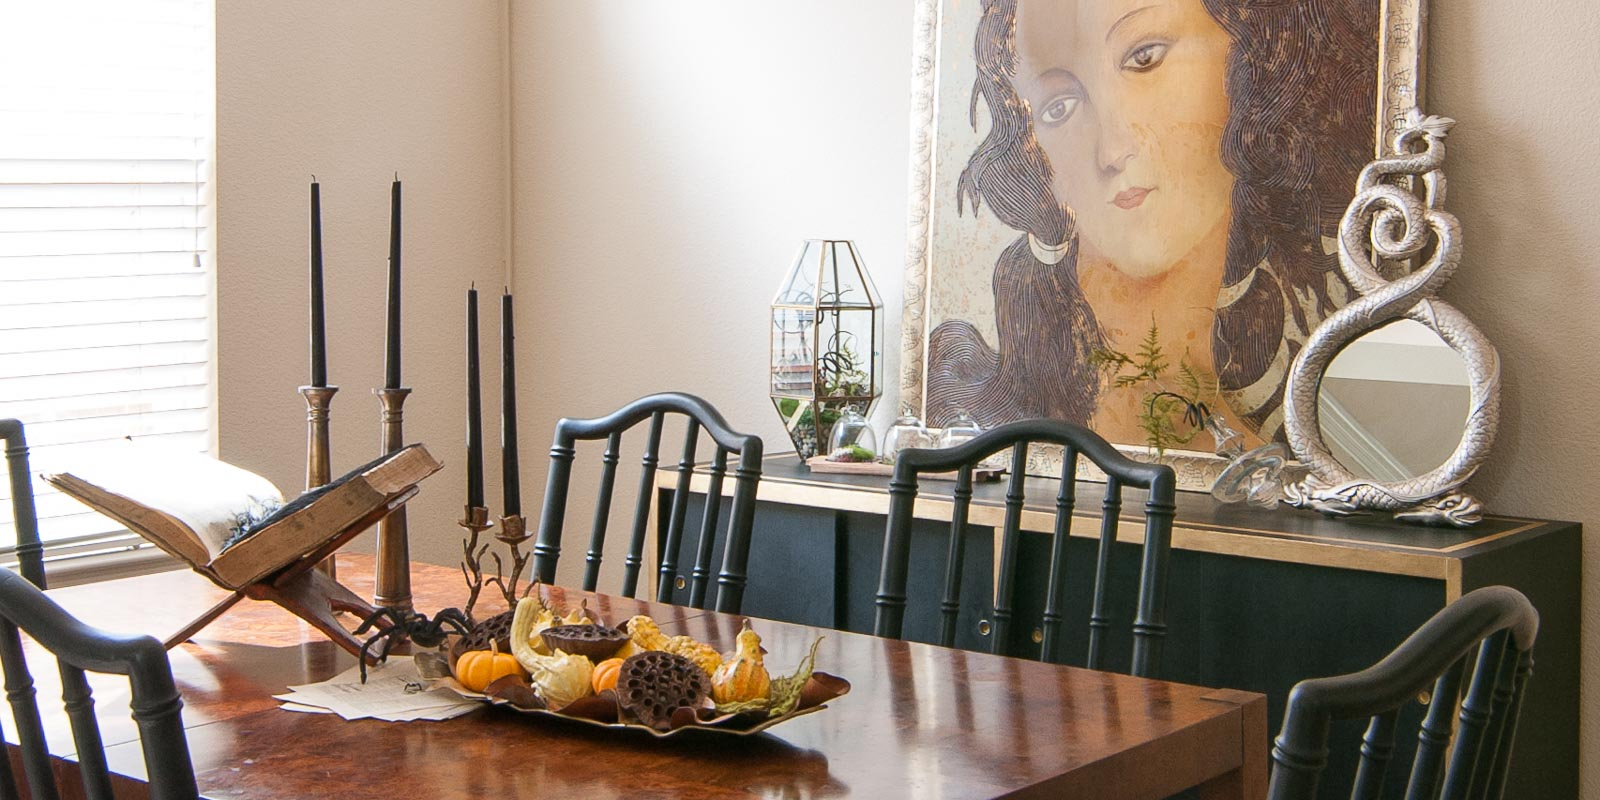 Halloween Dining Room A Study of the Curious and